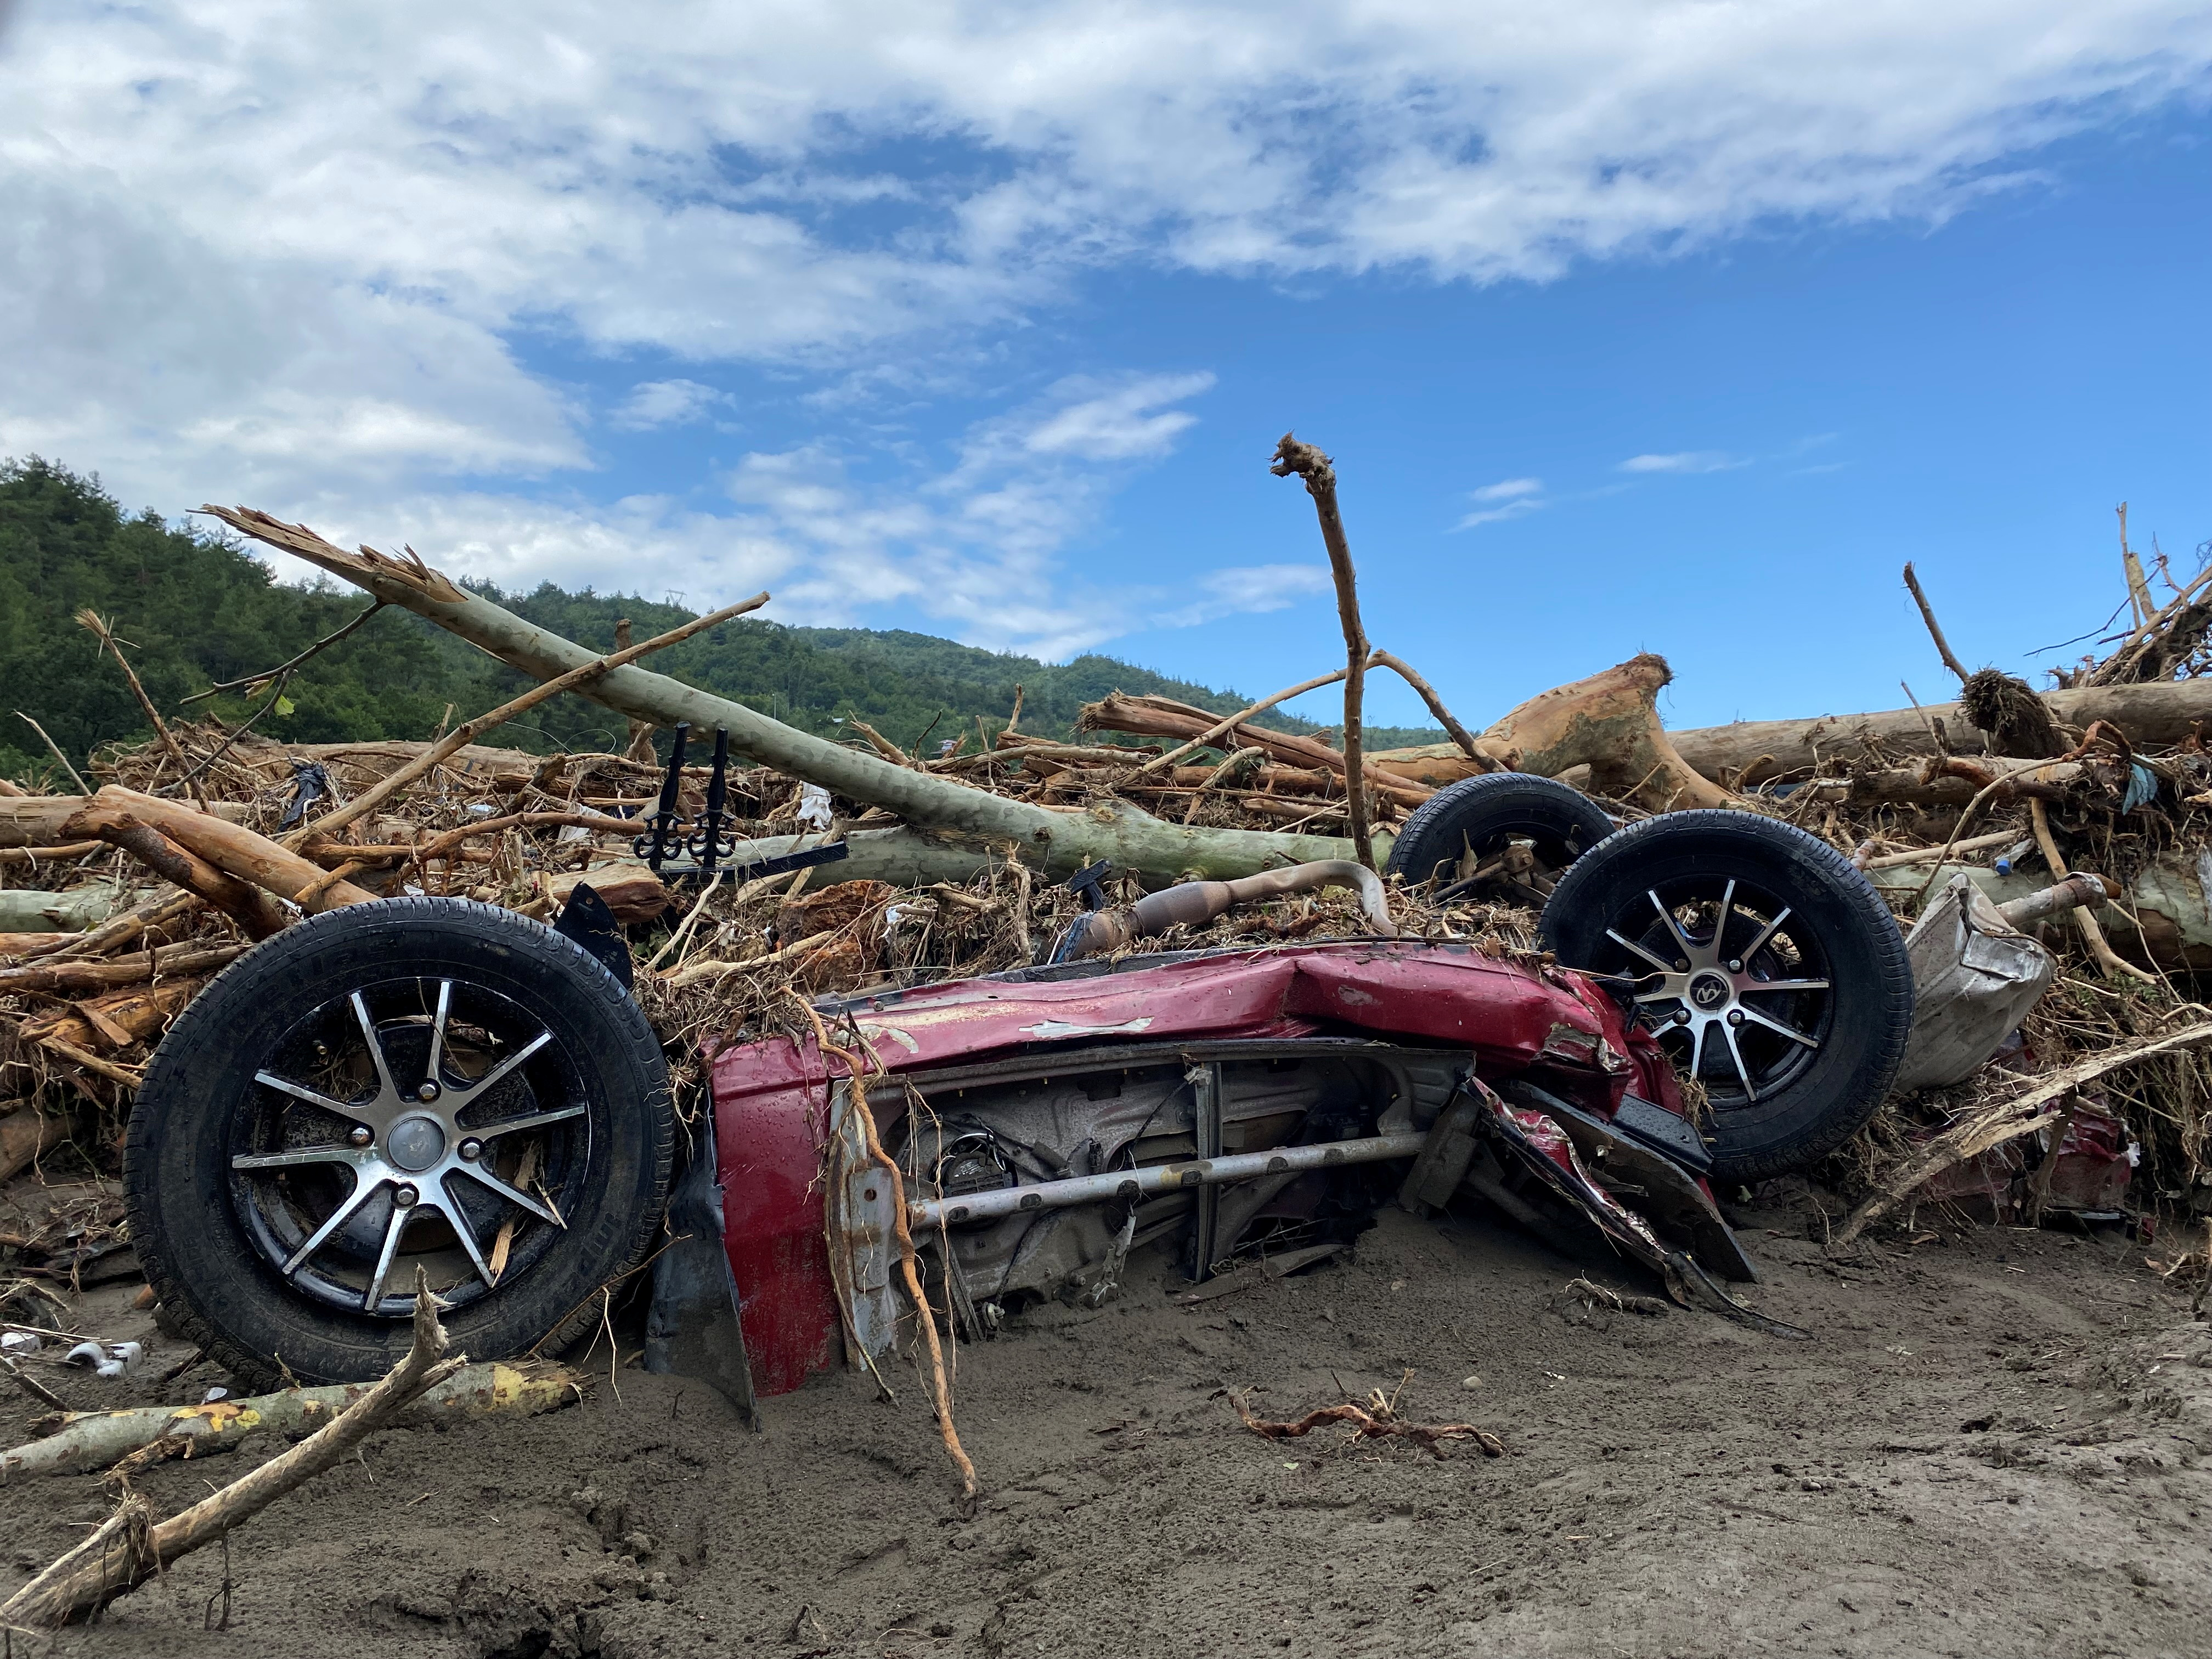 The wreckage of a vehicle is seen amid debris after flash floods swept through towns in the Turkish Black Sea region, in the town of Bozkurt, in Kastamonu province, Turkey, August 14, 2021. REUTERS/Bulent Usta